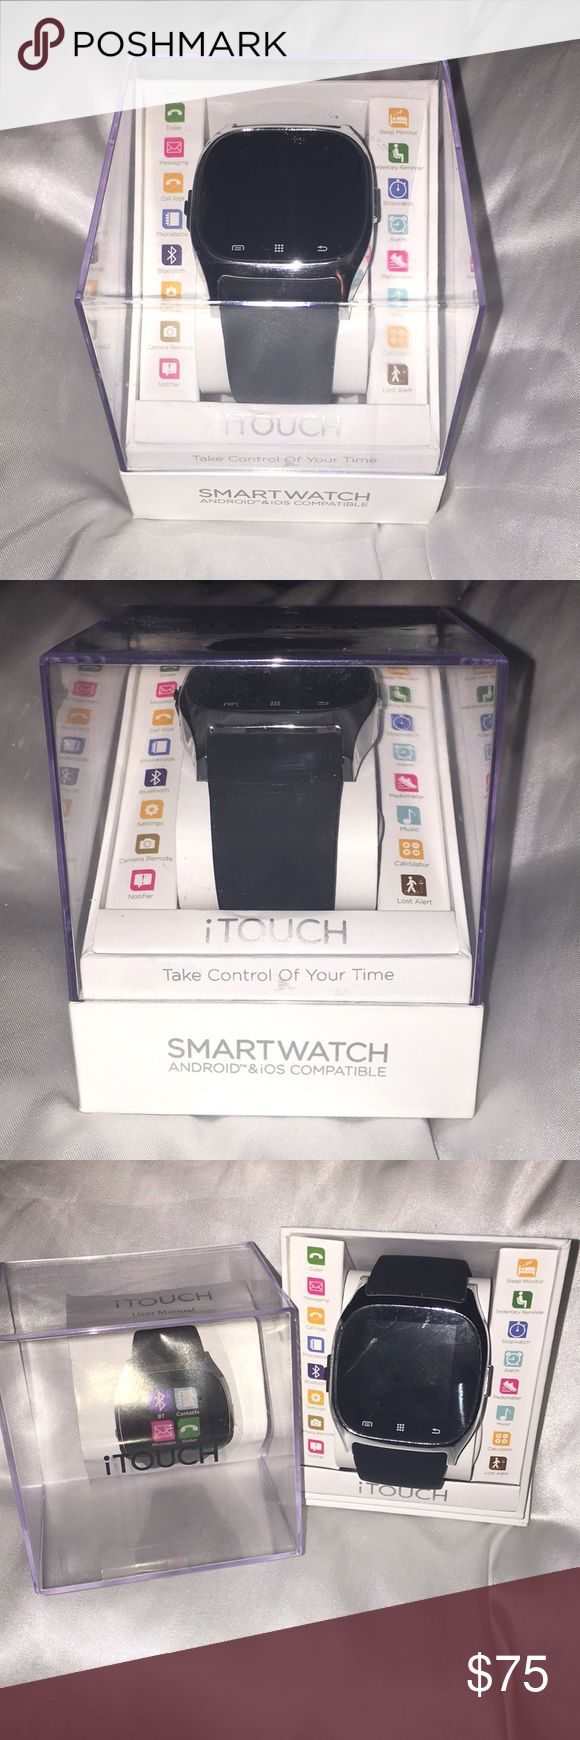 Itouch 3360 Smart Watch NEW Dialer  messaging  call log photos  Bluetooth settings  camera remote  notifier Sleep monitor  stopwatch  alarm  pedal meter  music  calculator  Lost alert  sleep monitor Itouch Accessories Watches